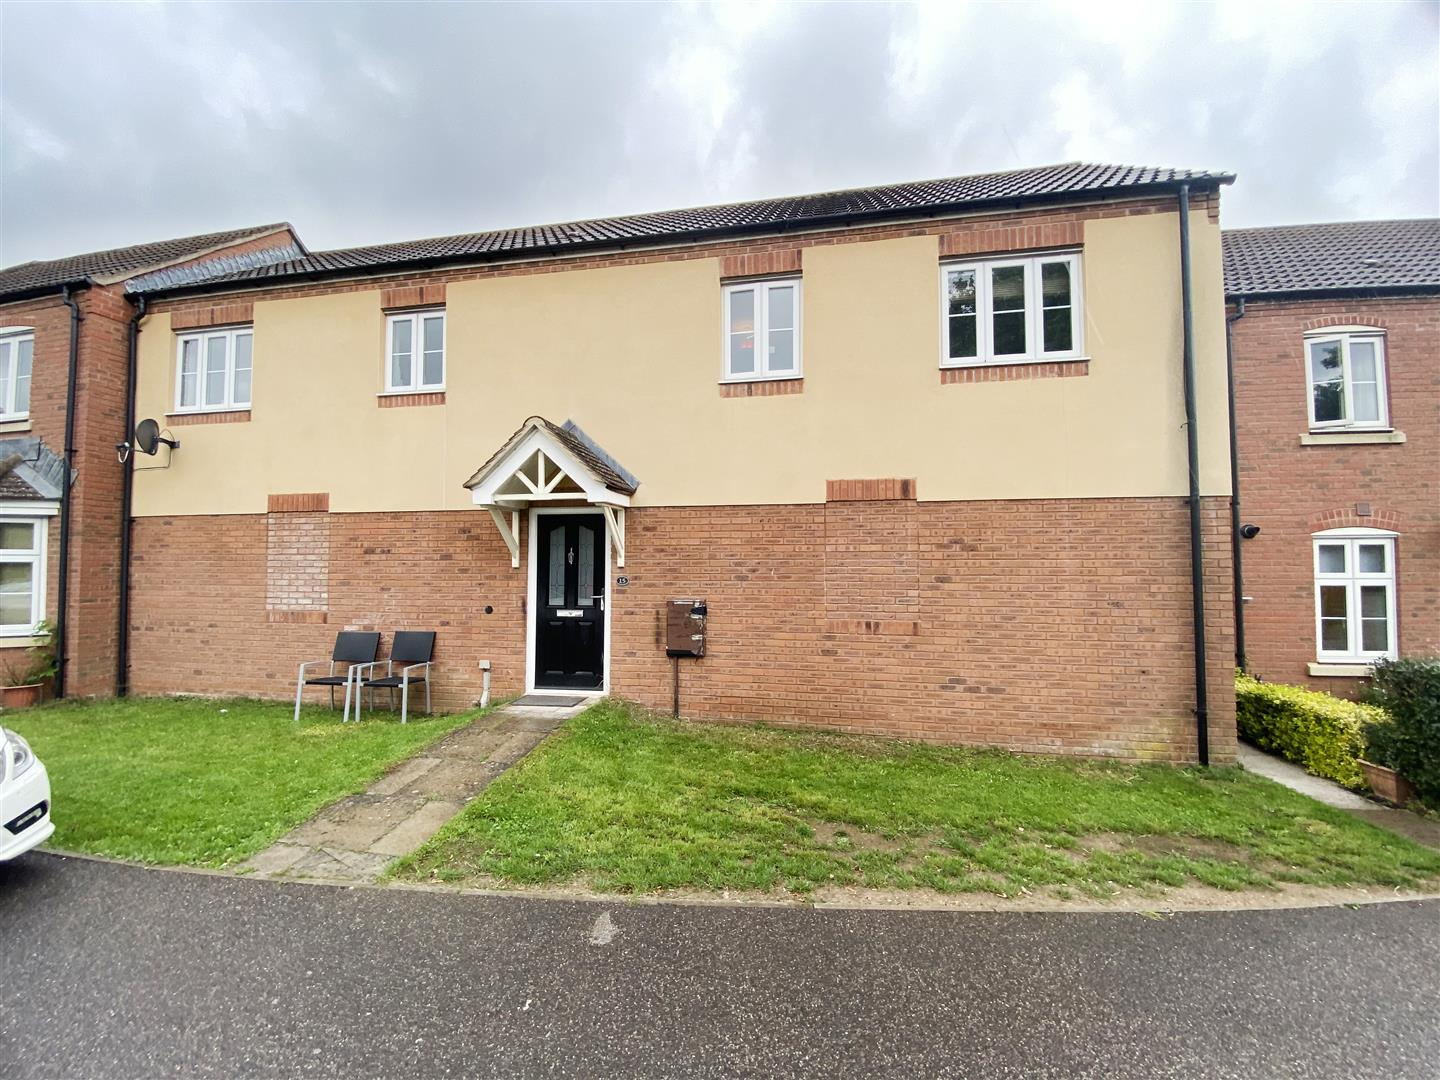 2 bedroom  coachhouse for sale